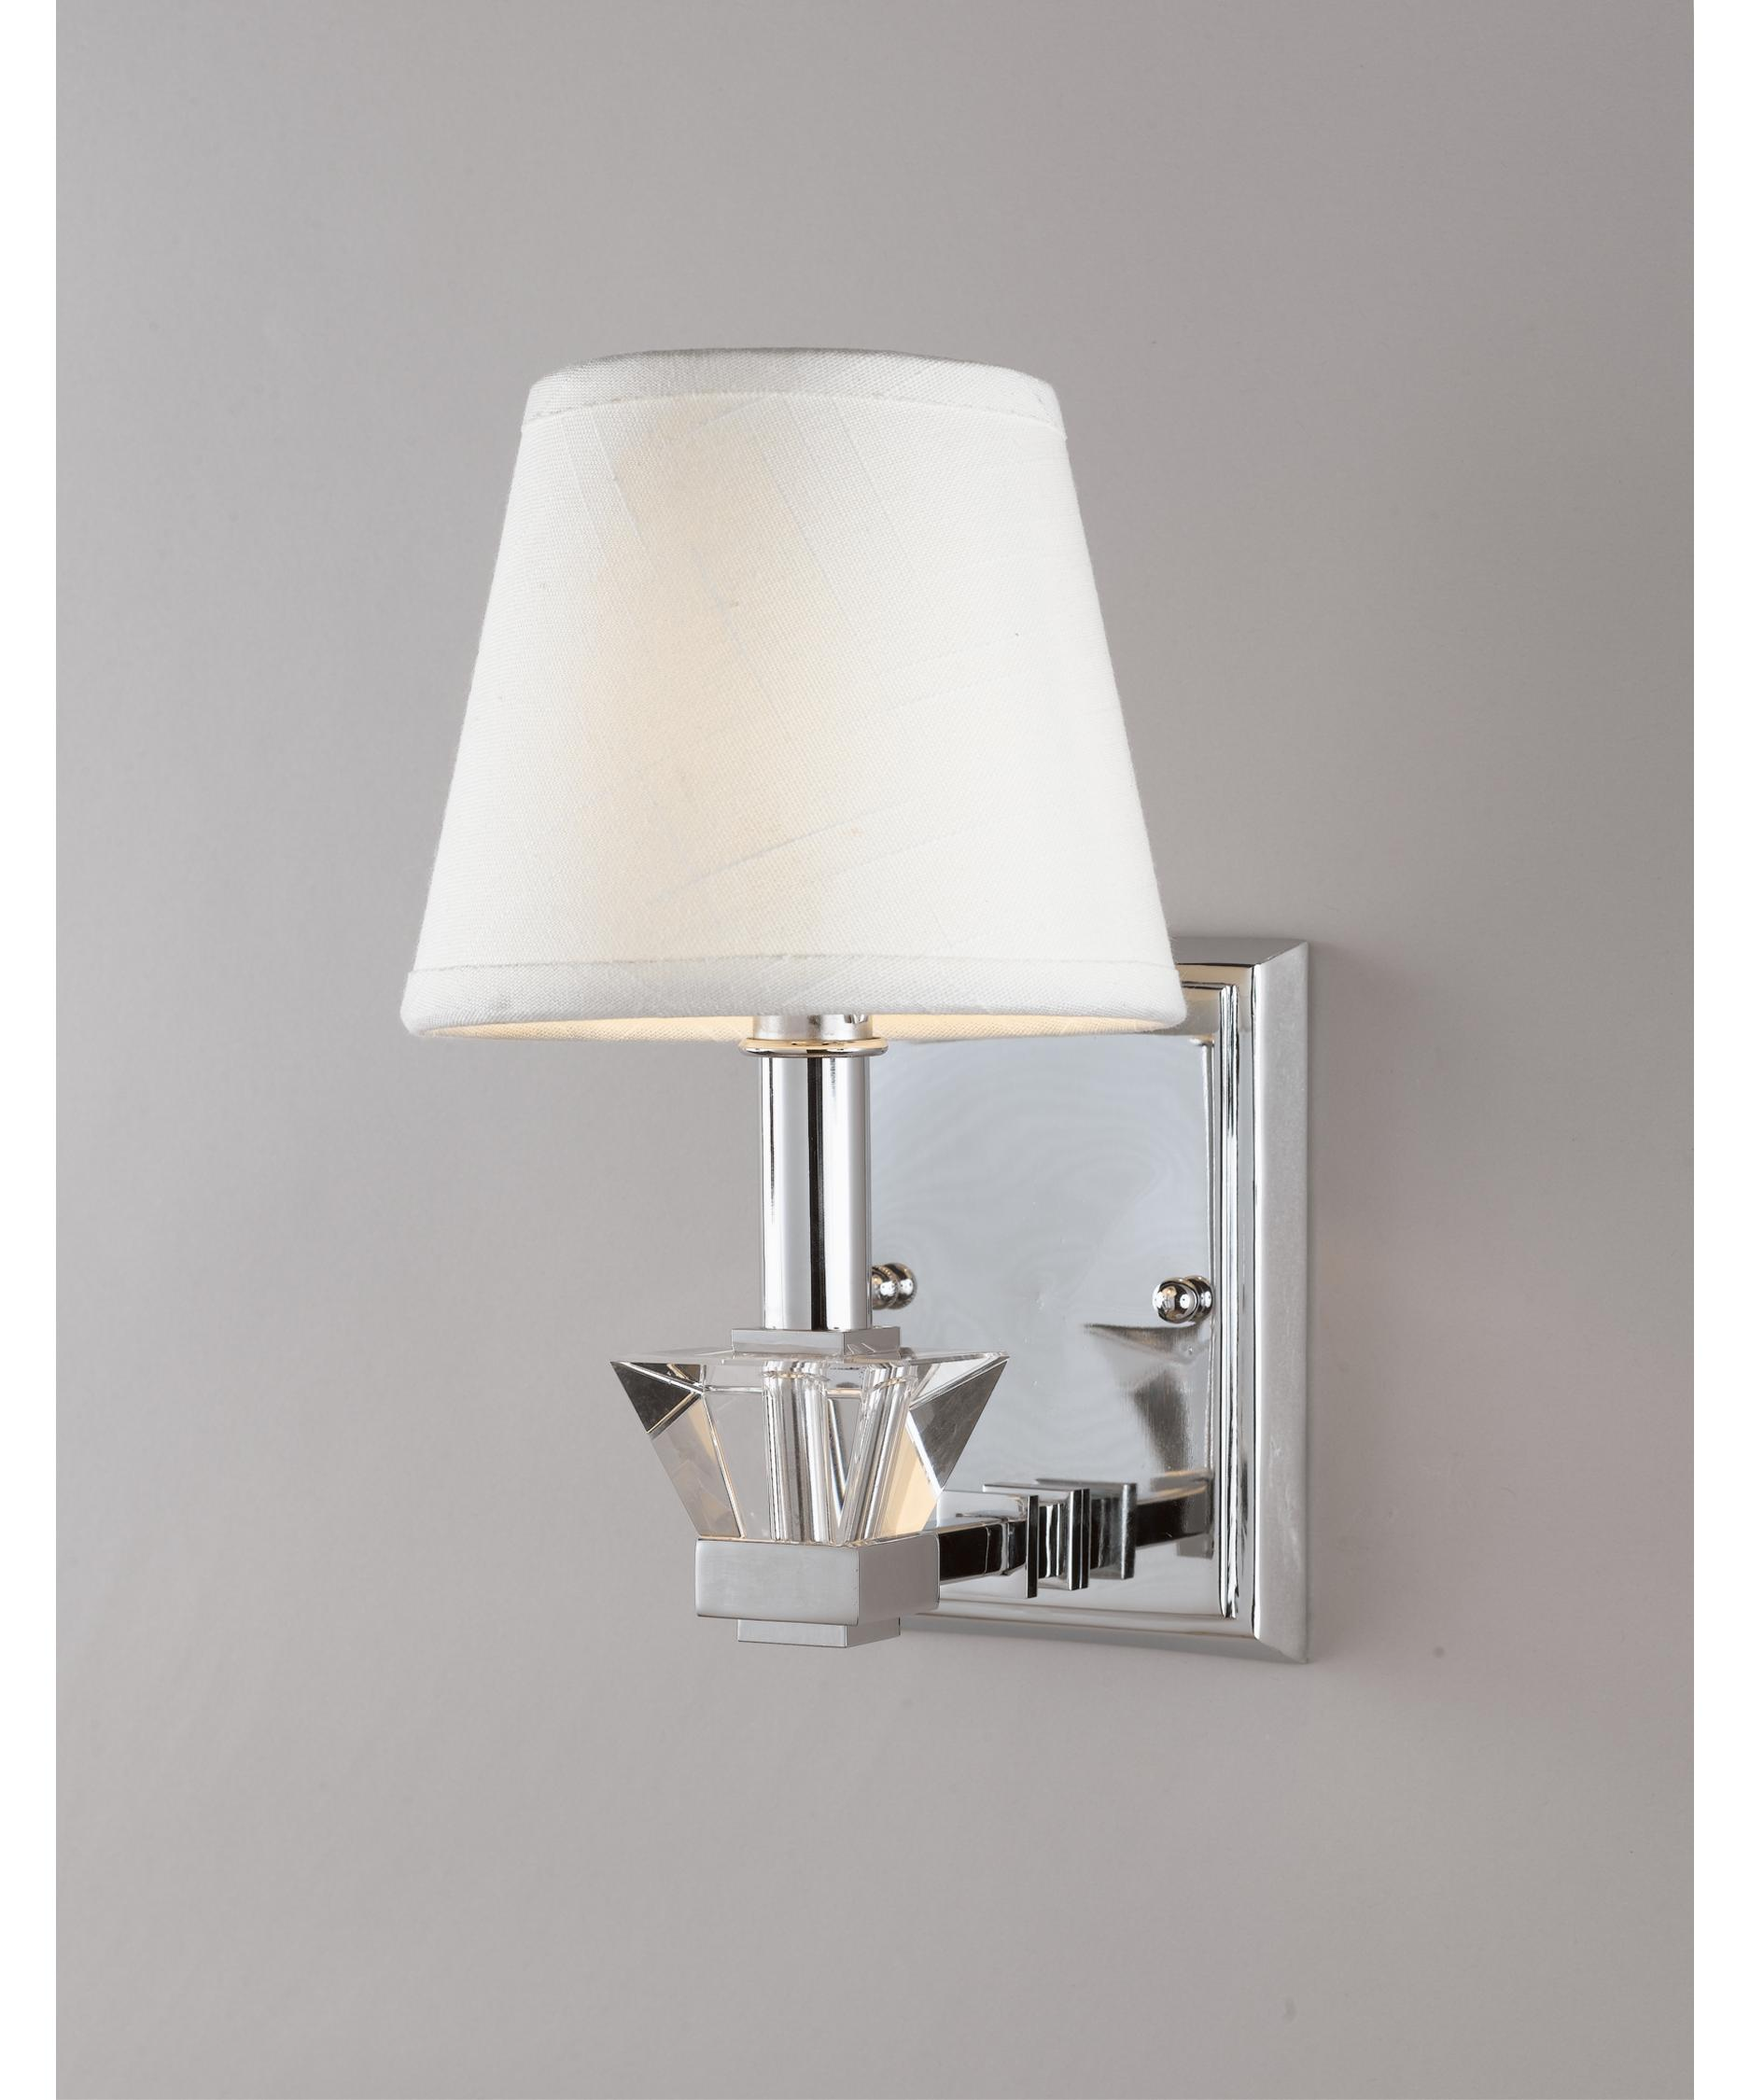 Quoizel Bathroom Sconces quoizel dx8701 deluxe 6 inch wide wall sconce   capitol lighting 1